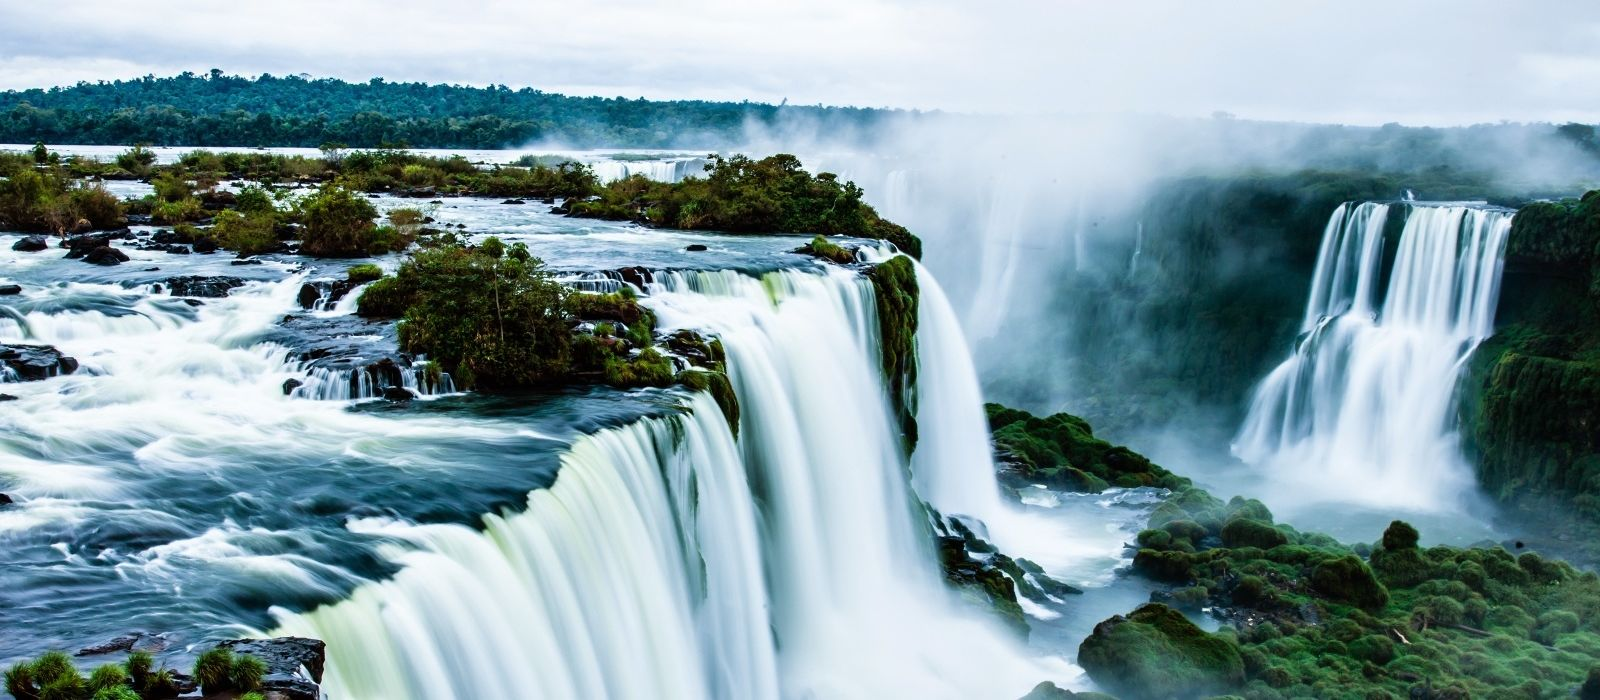 Iguaz falls the world s largest waterfalls enchanting for World popular images